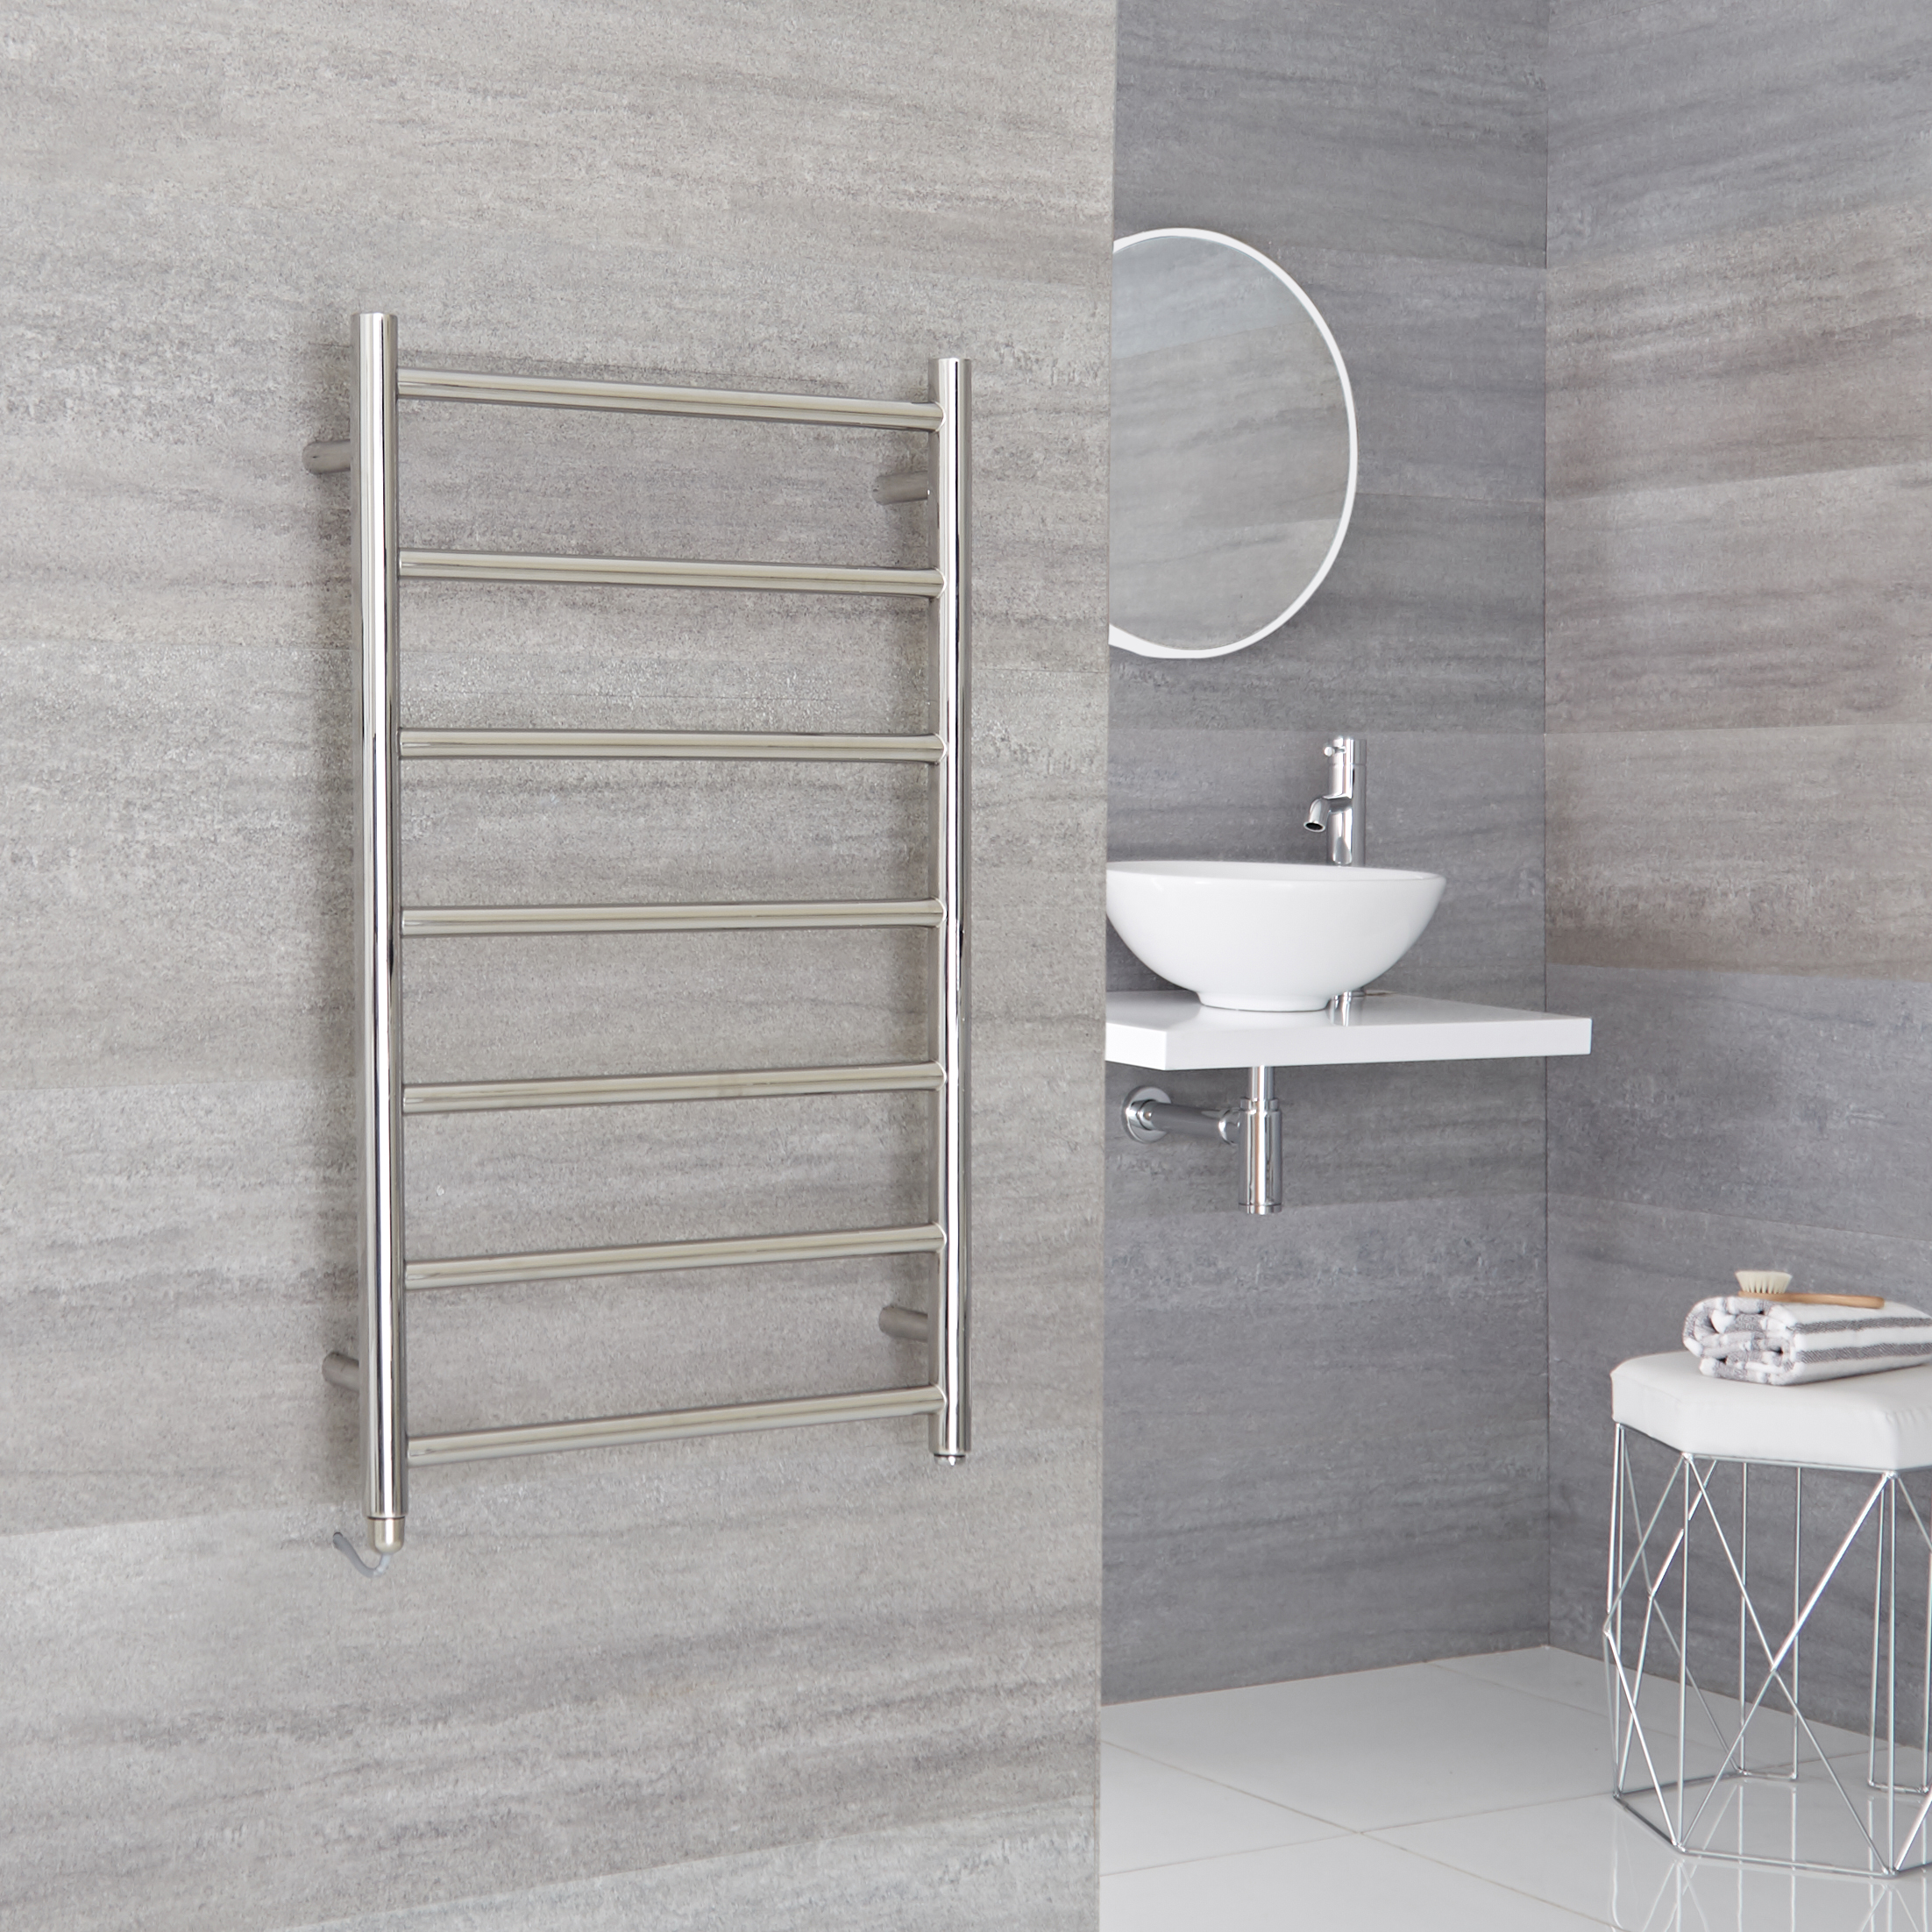 Milano Esk Electric - Stainless Steel Flat Heated Towel Rail - 500mm x 800mm